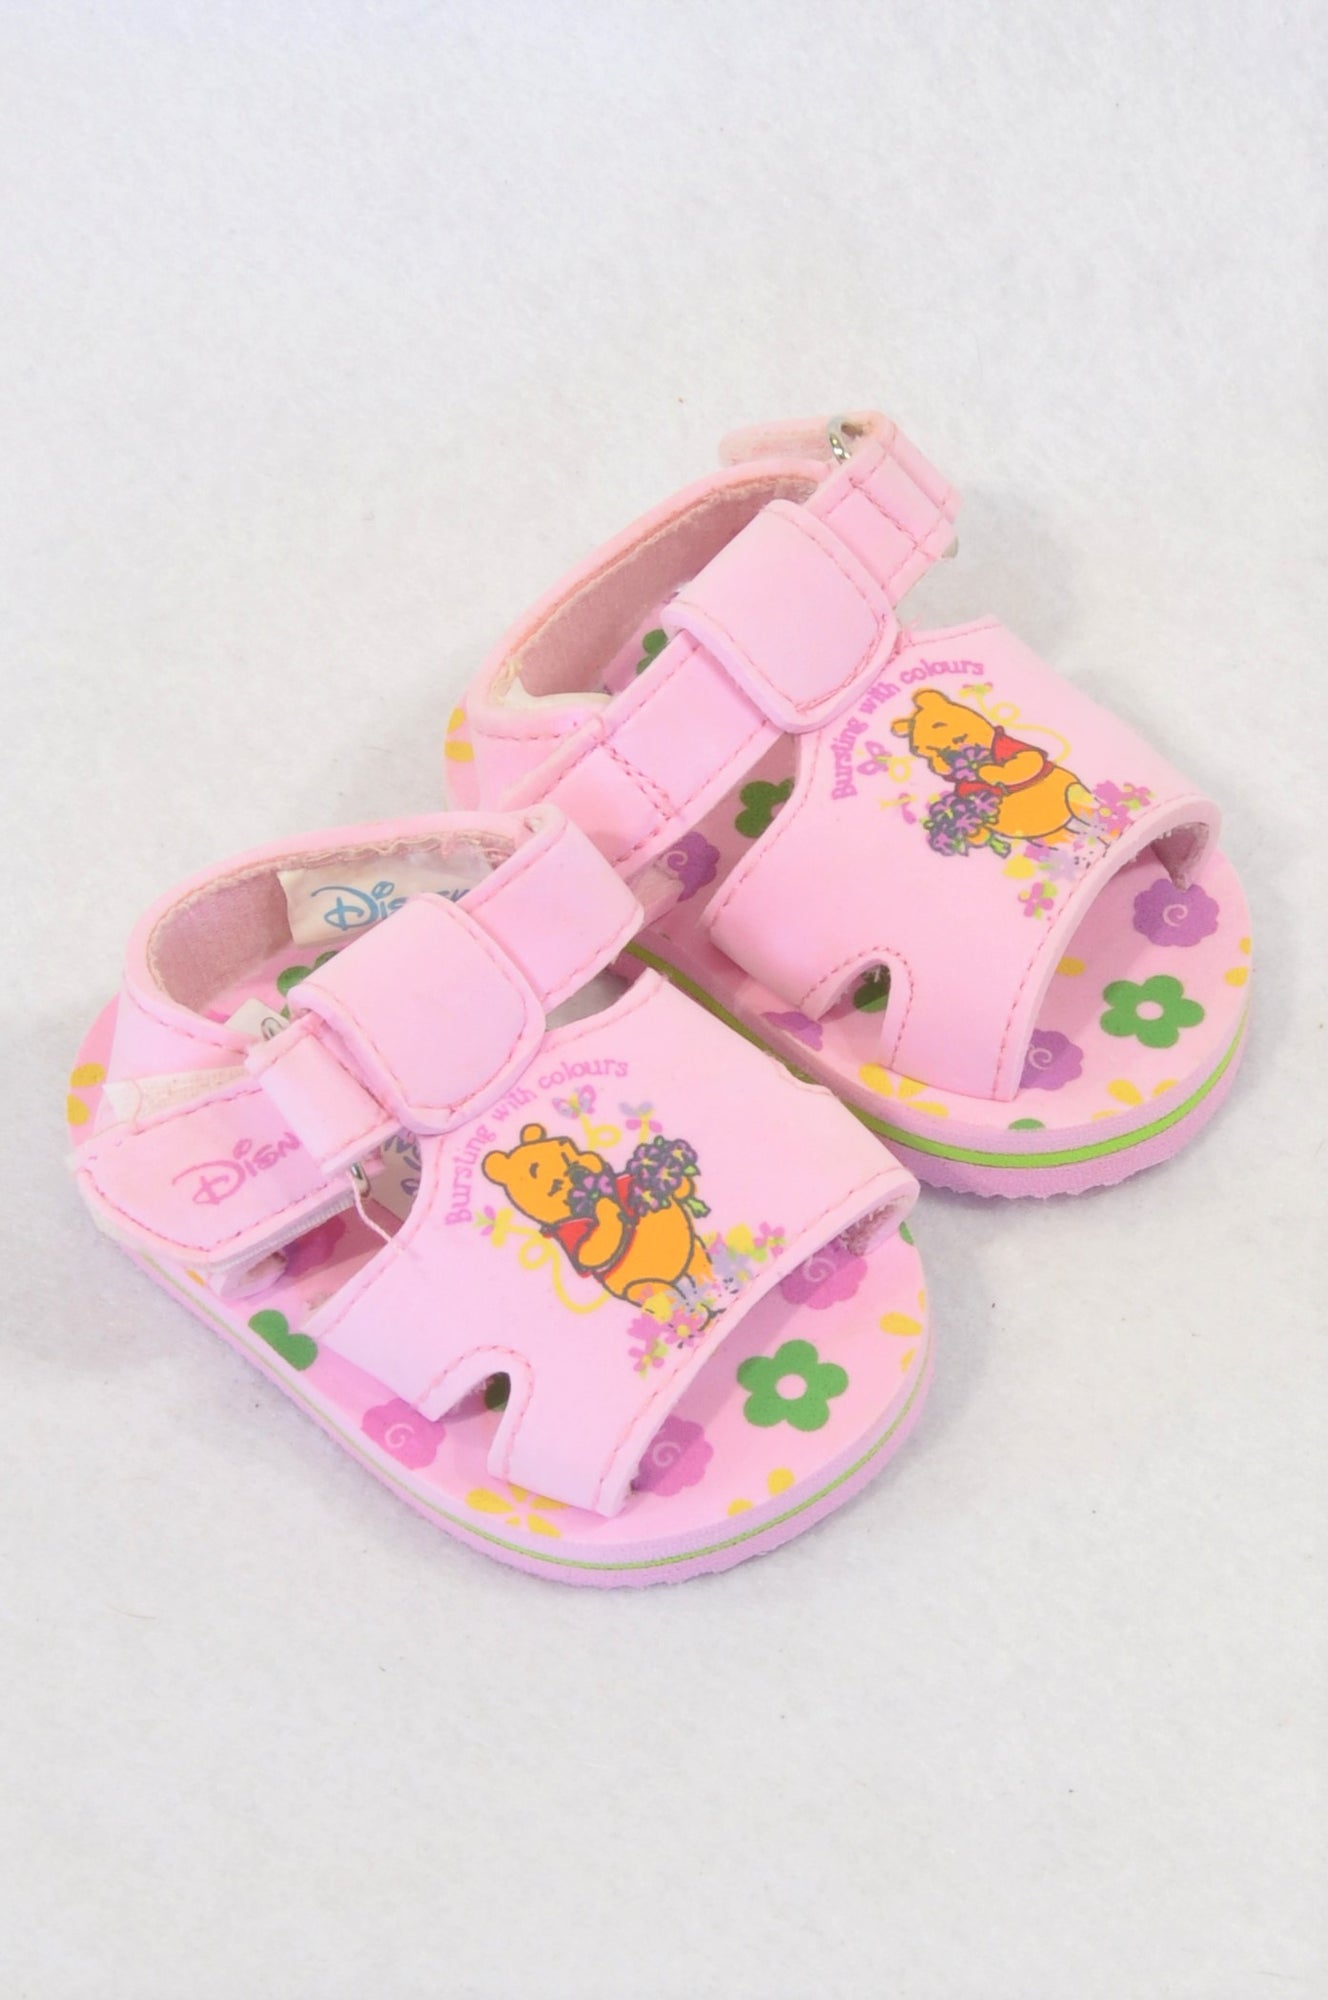 Disney Size 1 Pink Pooh Bear Sandals Girls 3-6 months